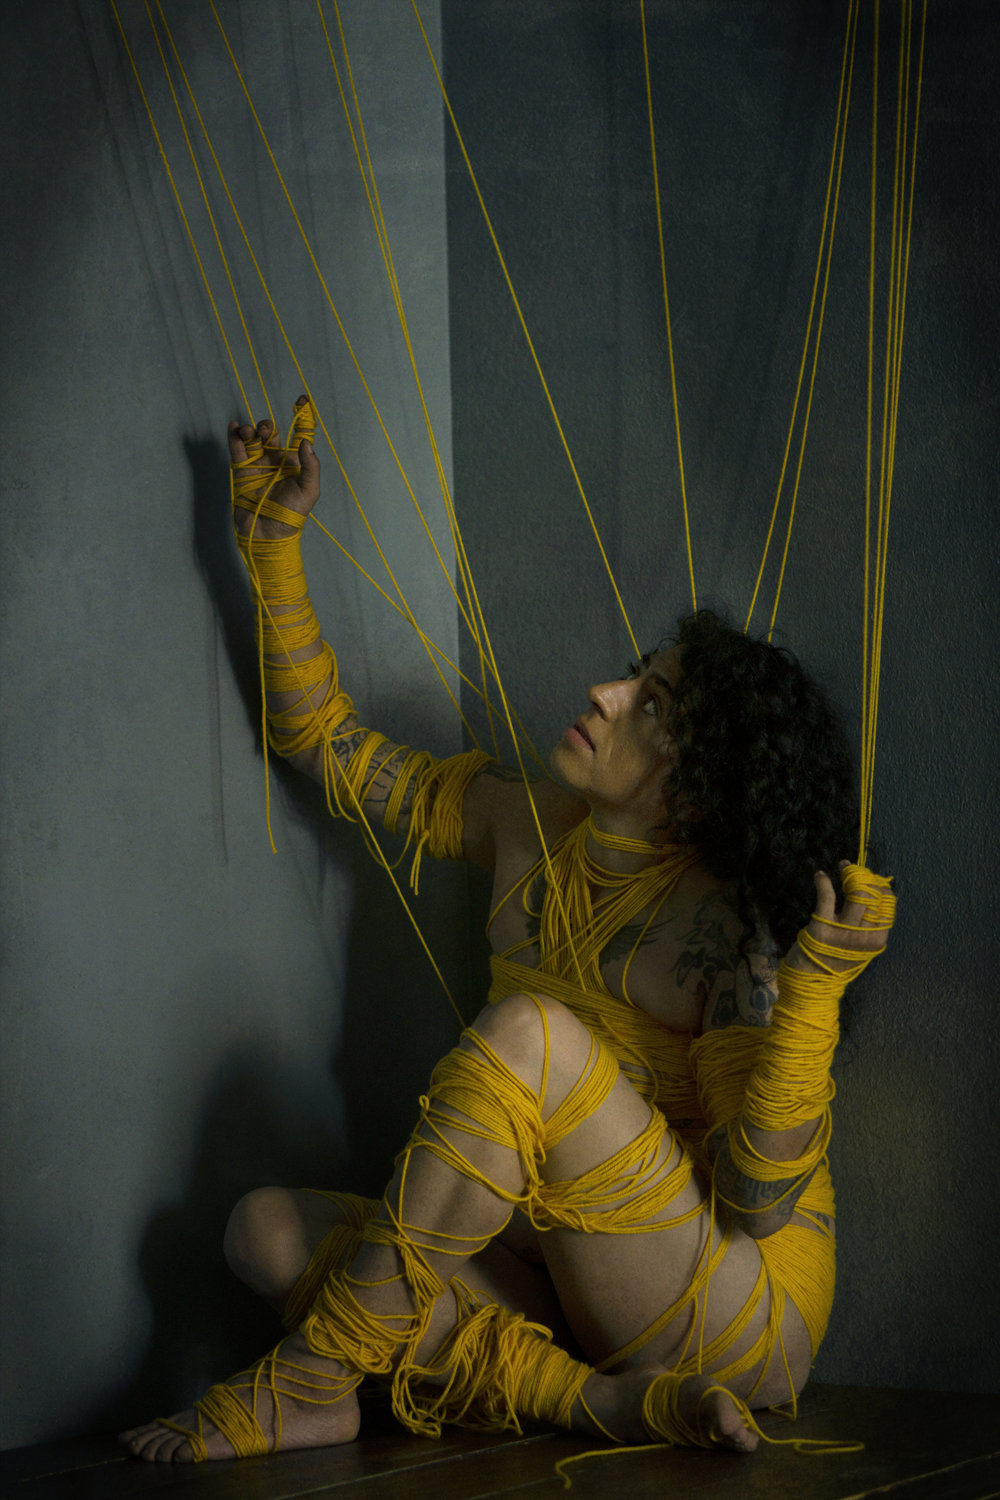 """""""Wrapped"""" by Kathryne Husk  In a cramped greenish-umber space, an long haired ambiguously gendered figure (slightly feminine of center) sits on the ground with one hand against the wall. The figure is wrapped tightly in bright yellow yarn/threads that hang from the top of the frame"""